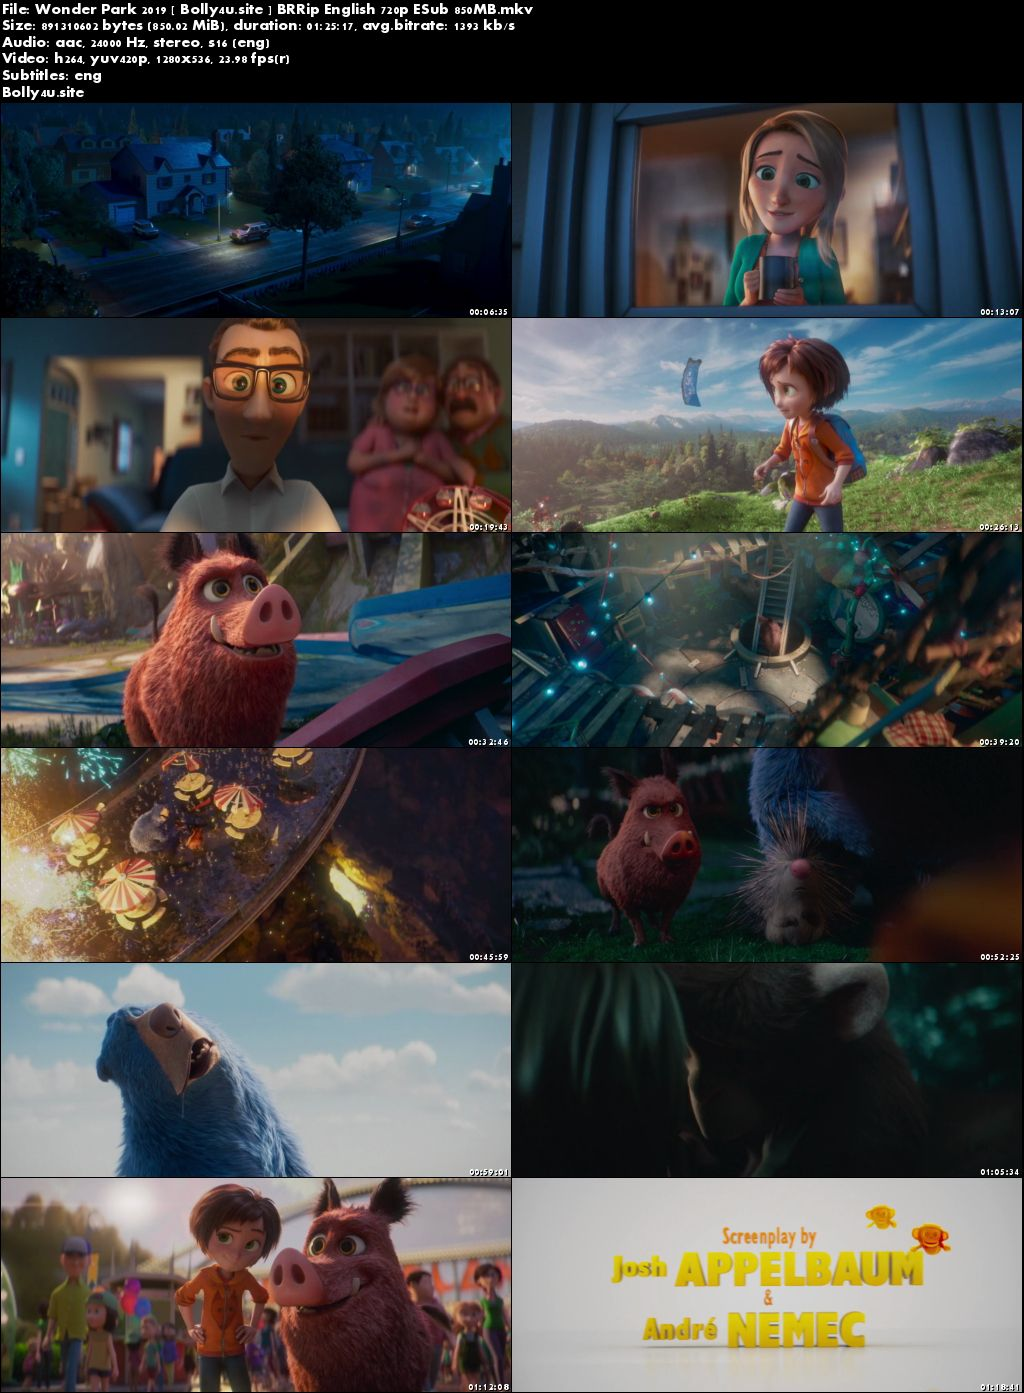 Wonder Park 2019 BRRip 850MB English 720p ESub Download